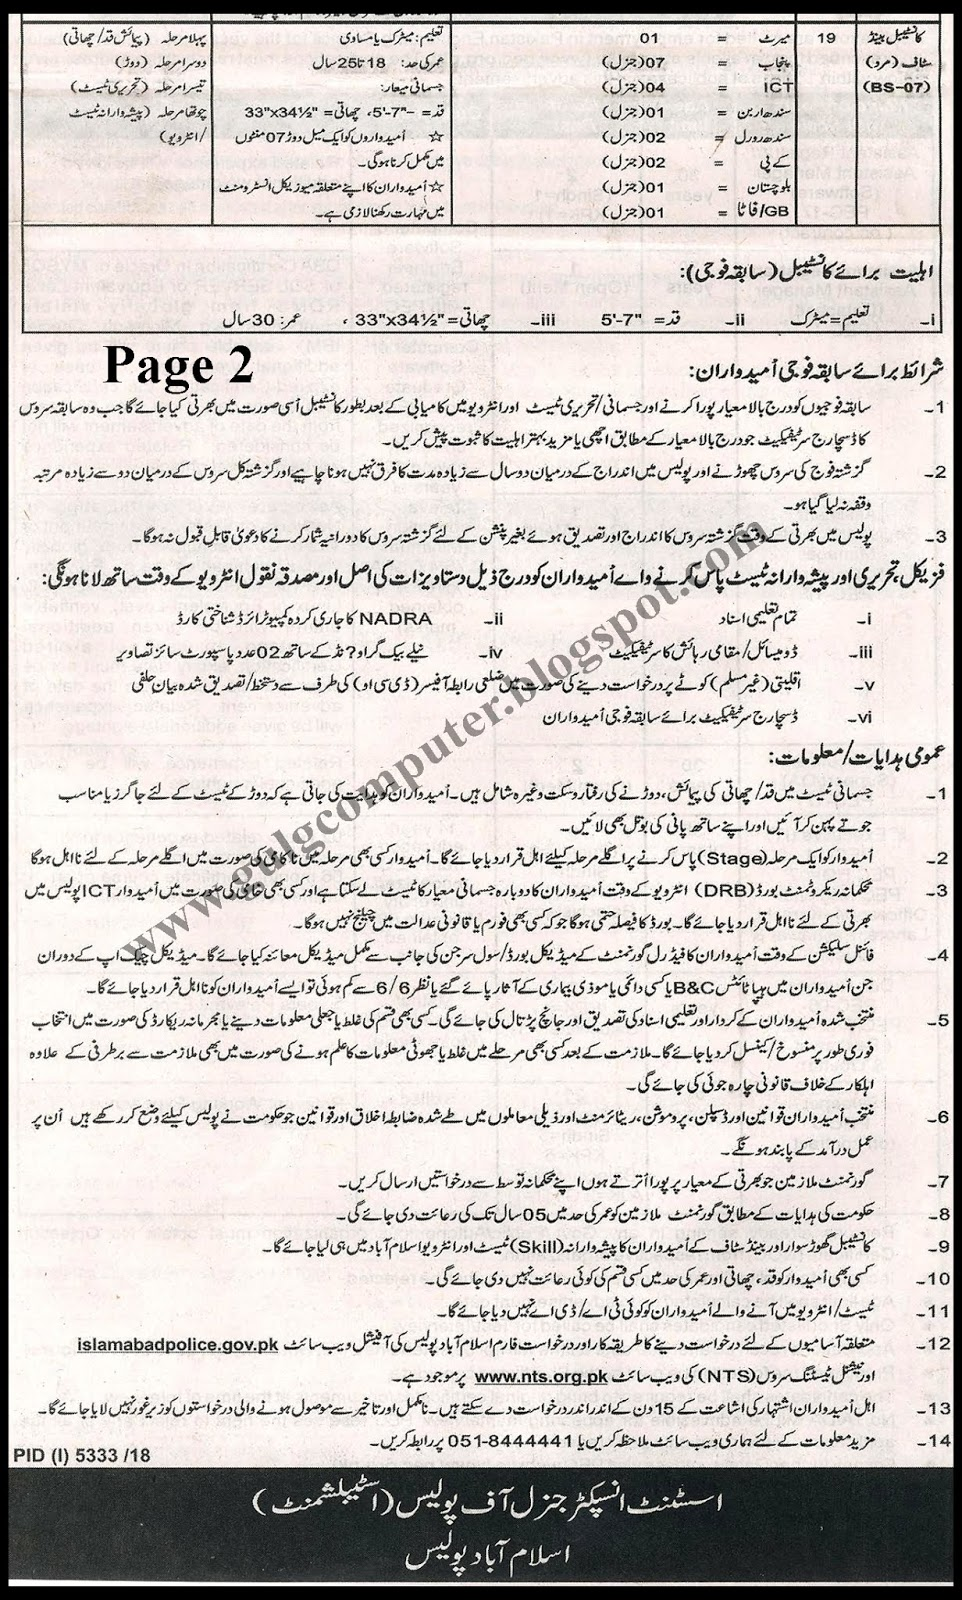 Islamabad Police Jobs | Male and Female - Gul G Computer